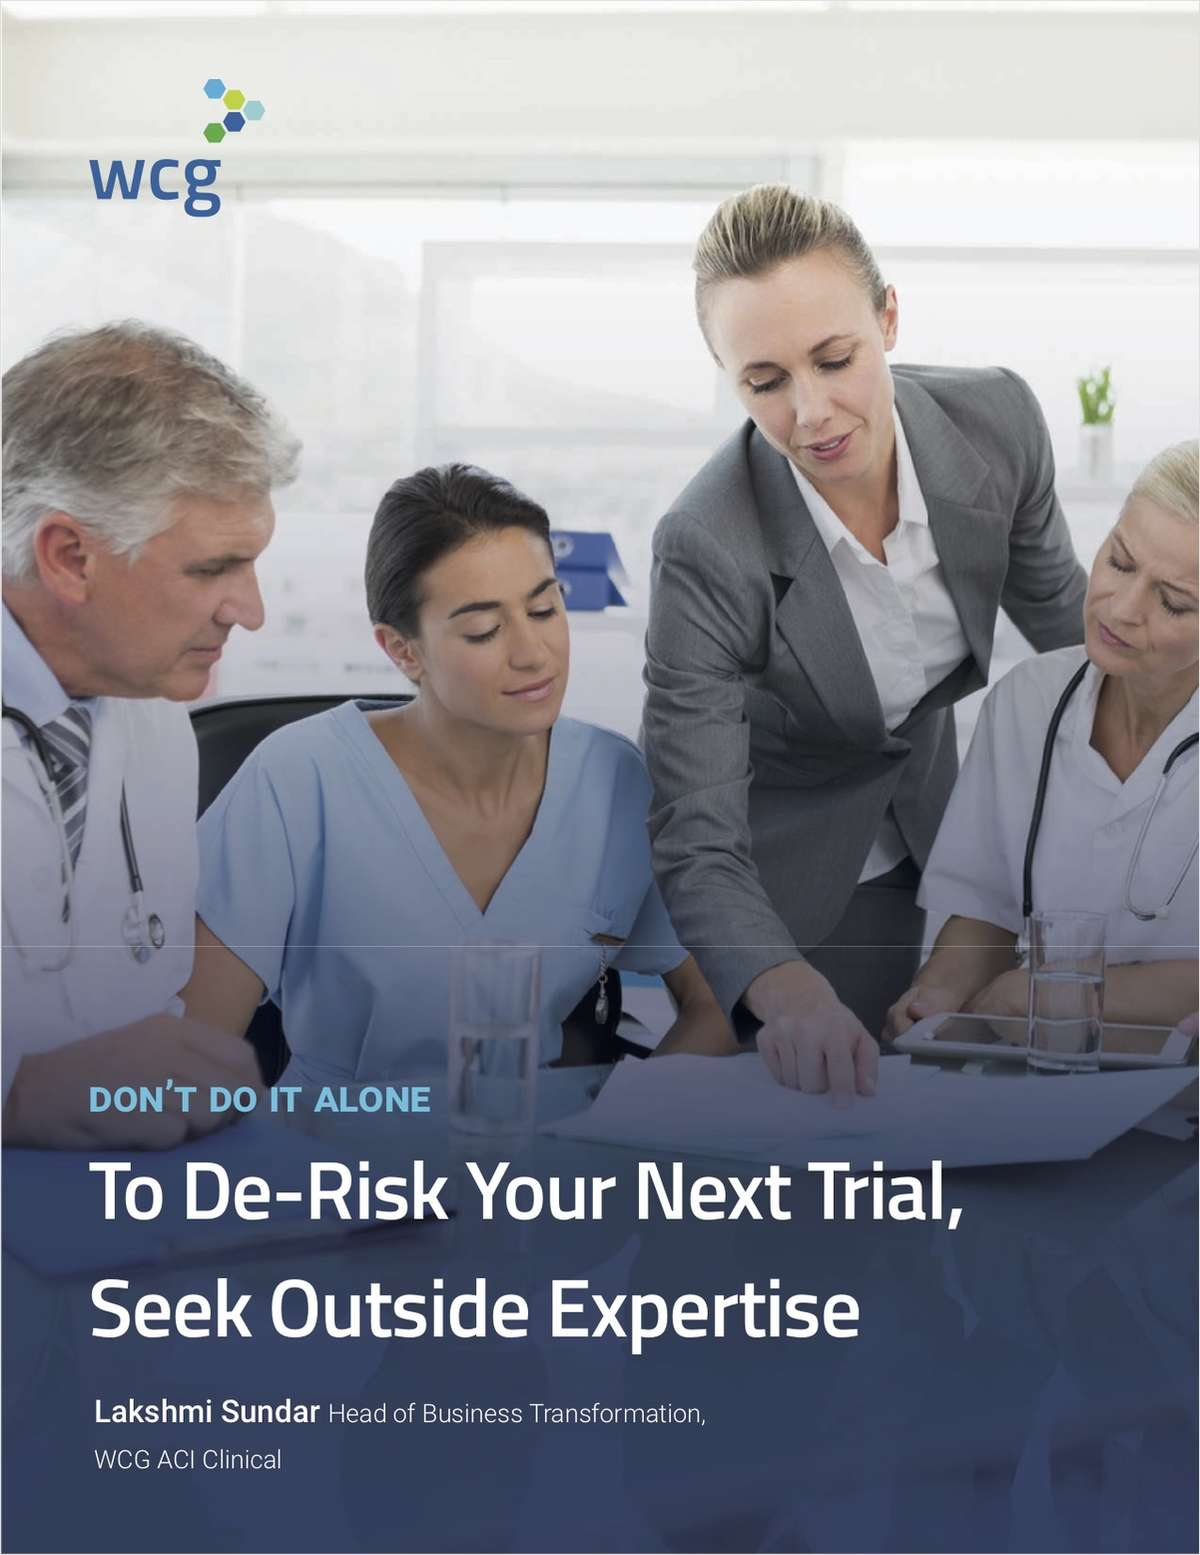 To De-Risk Your Next Trial, Seek Outside Expertise